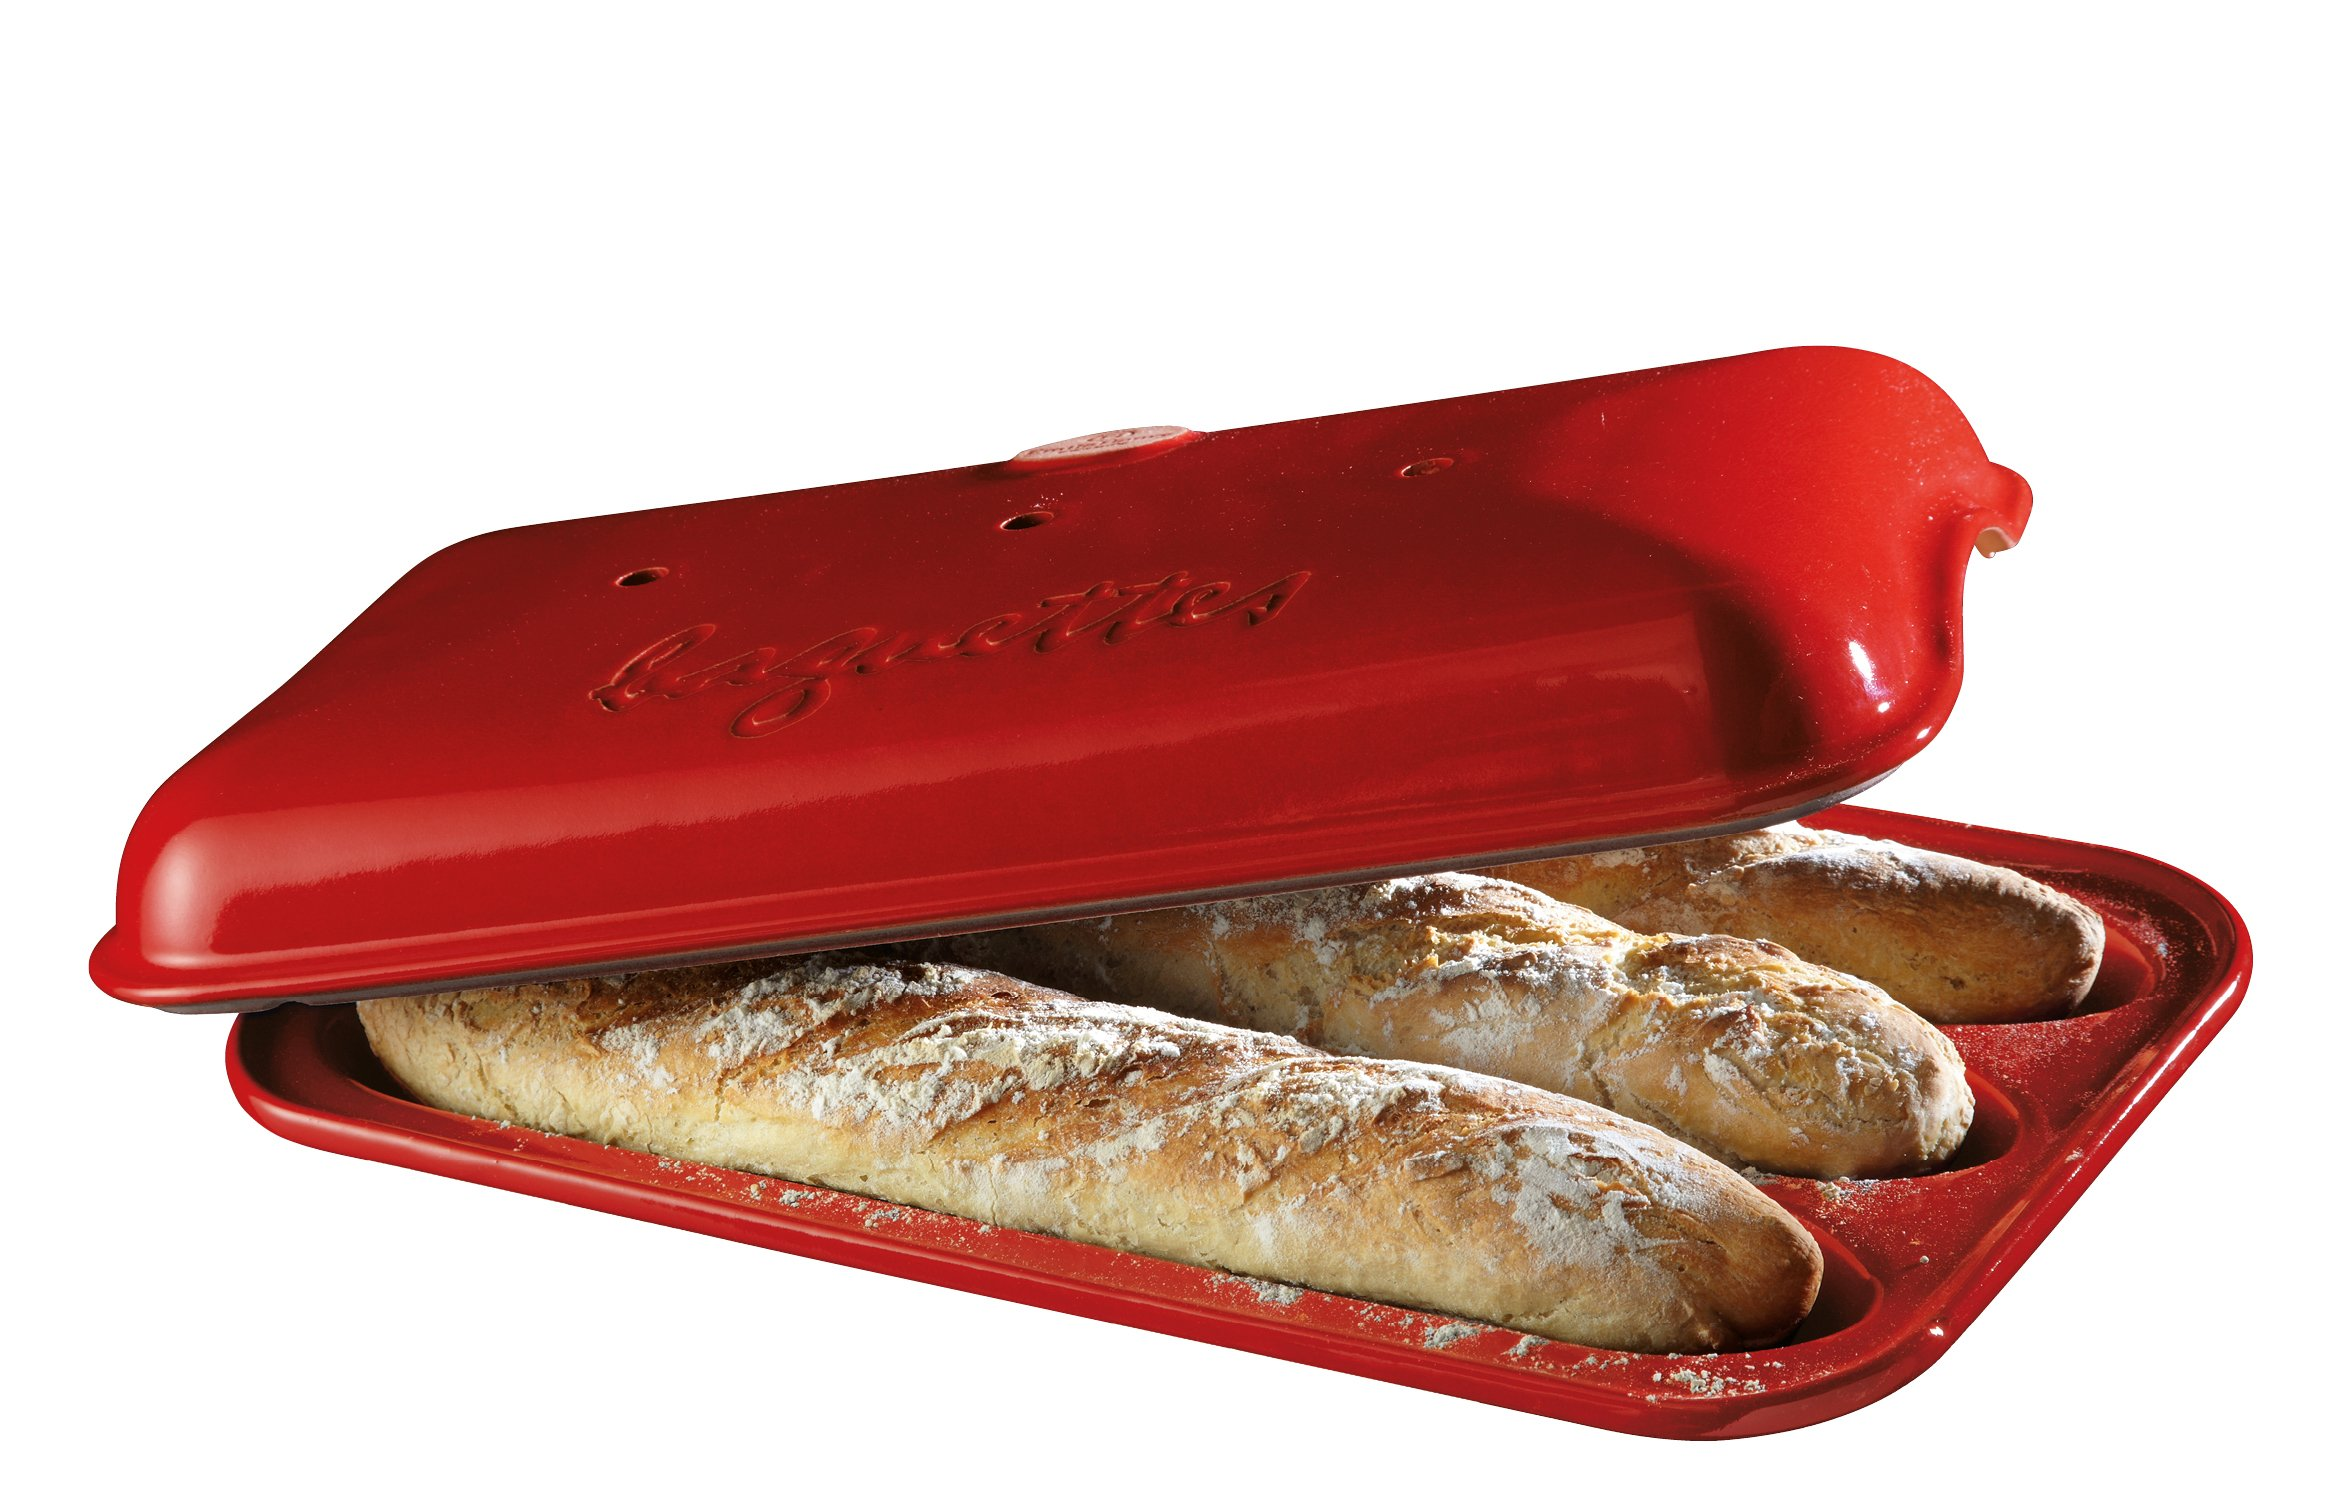 Emile Henry Made In France Baguette Baker, 15.4 x 9.4'''', Burgundy by Emile Henry